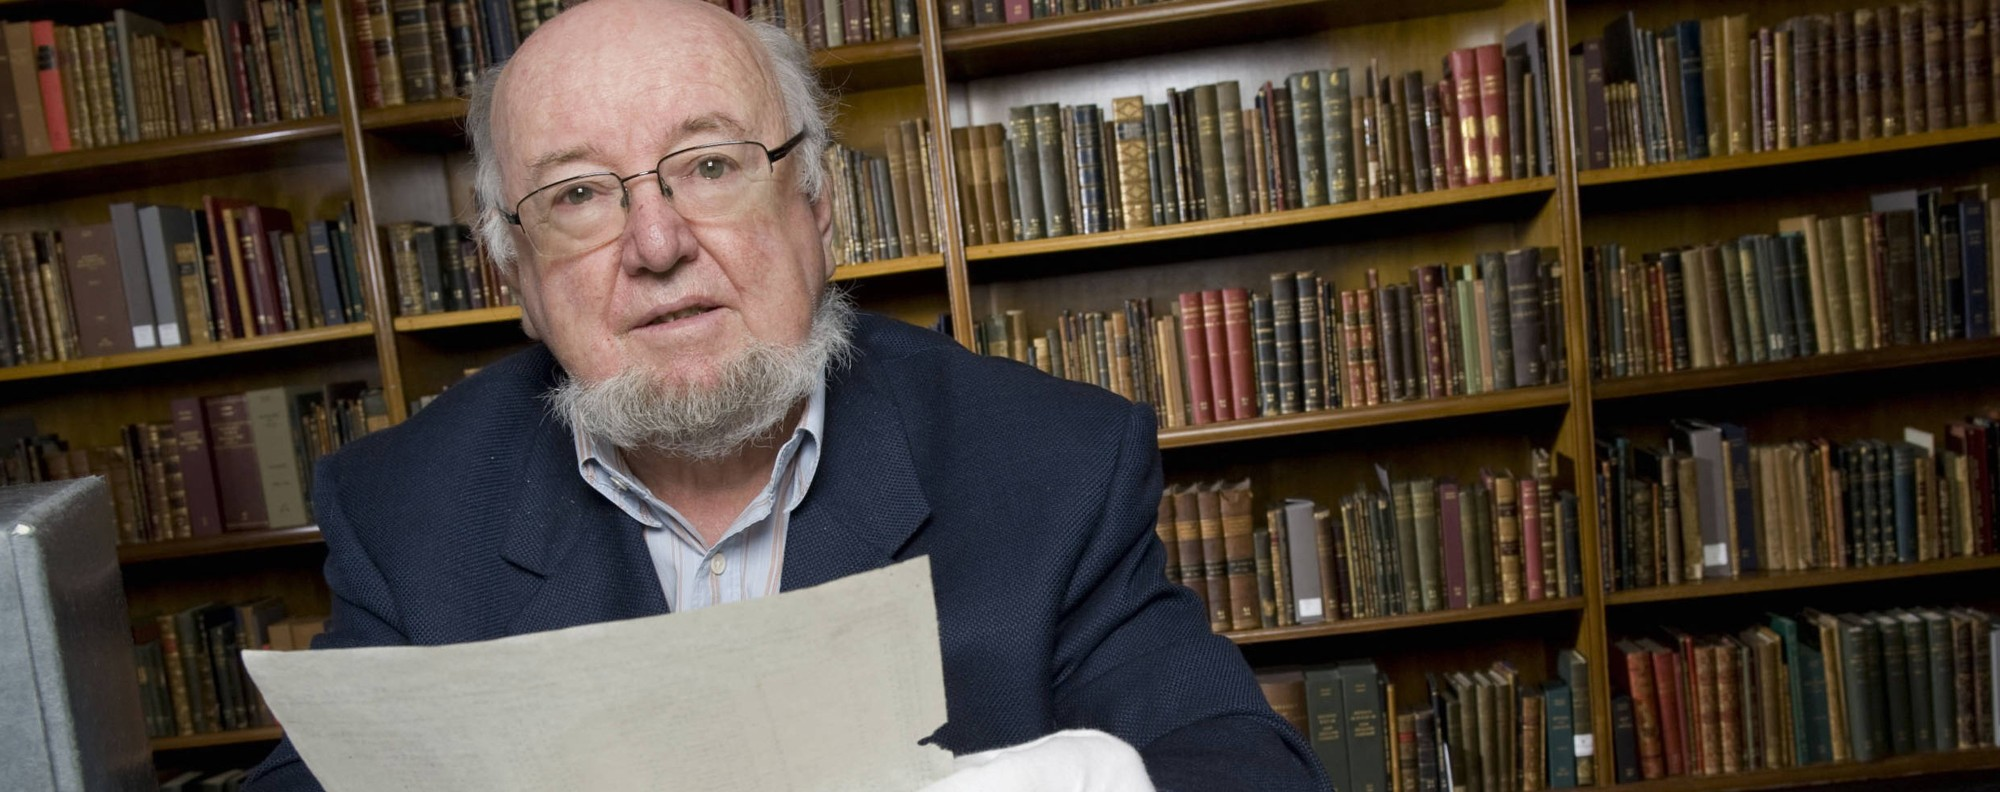 Thomas Keneally, author of Schindler's Ark. Photo: AFP